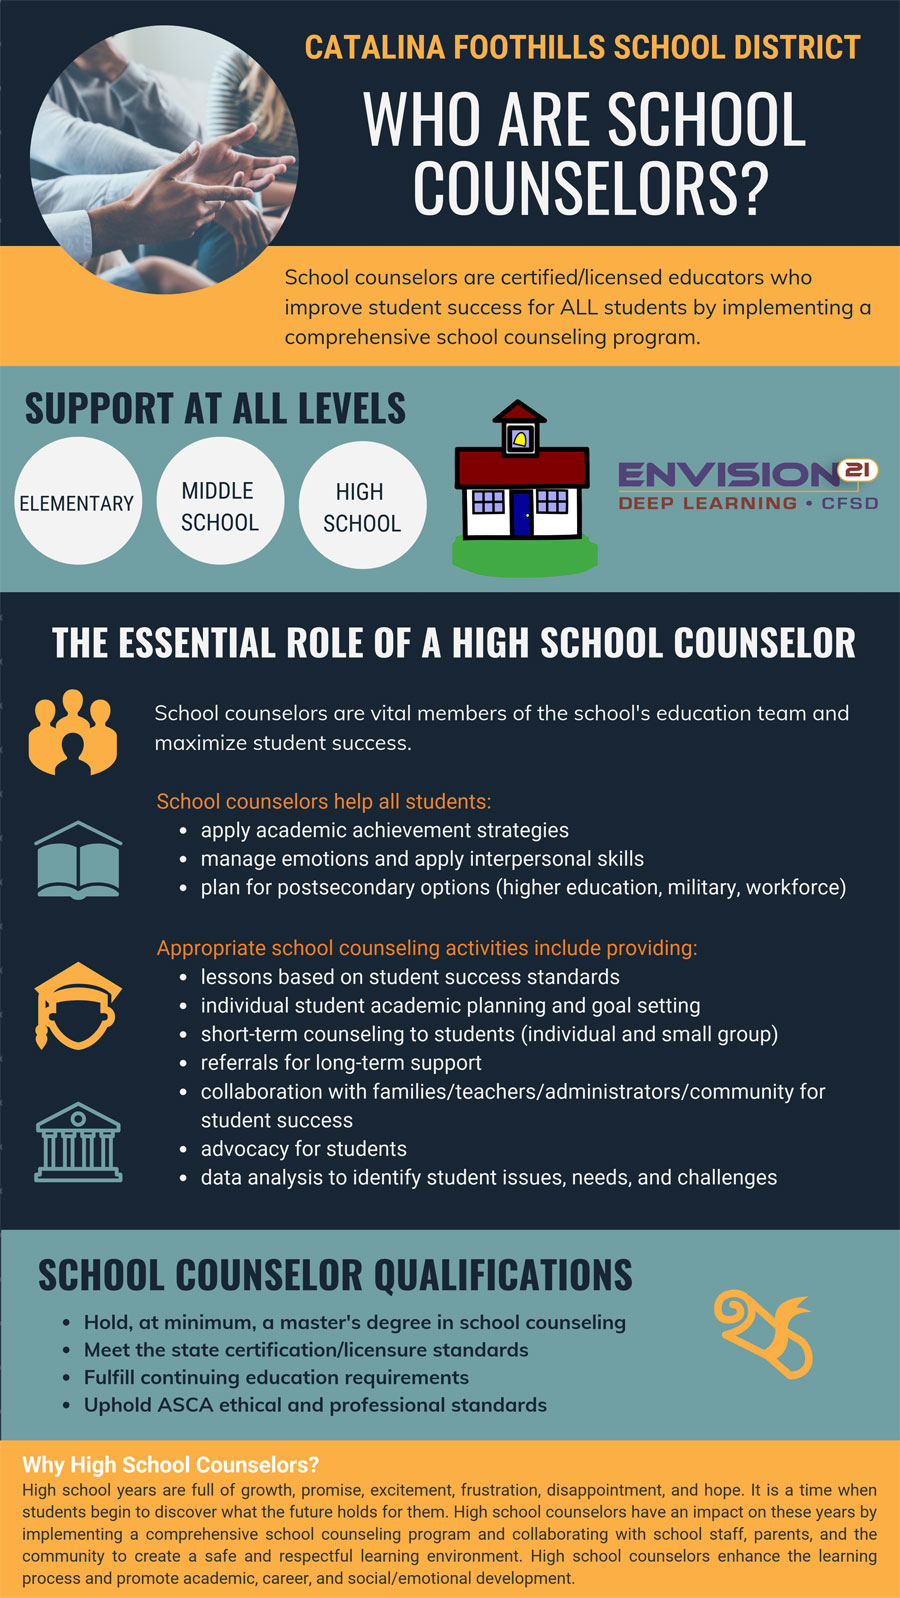 The Essential Role of High School Counselors